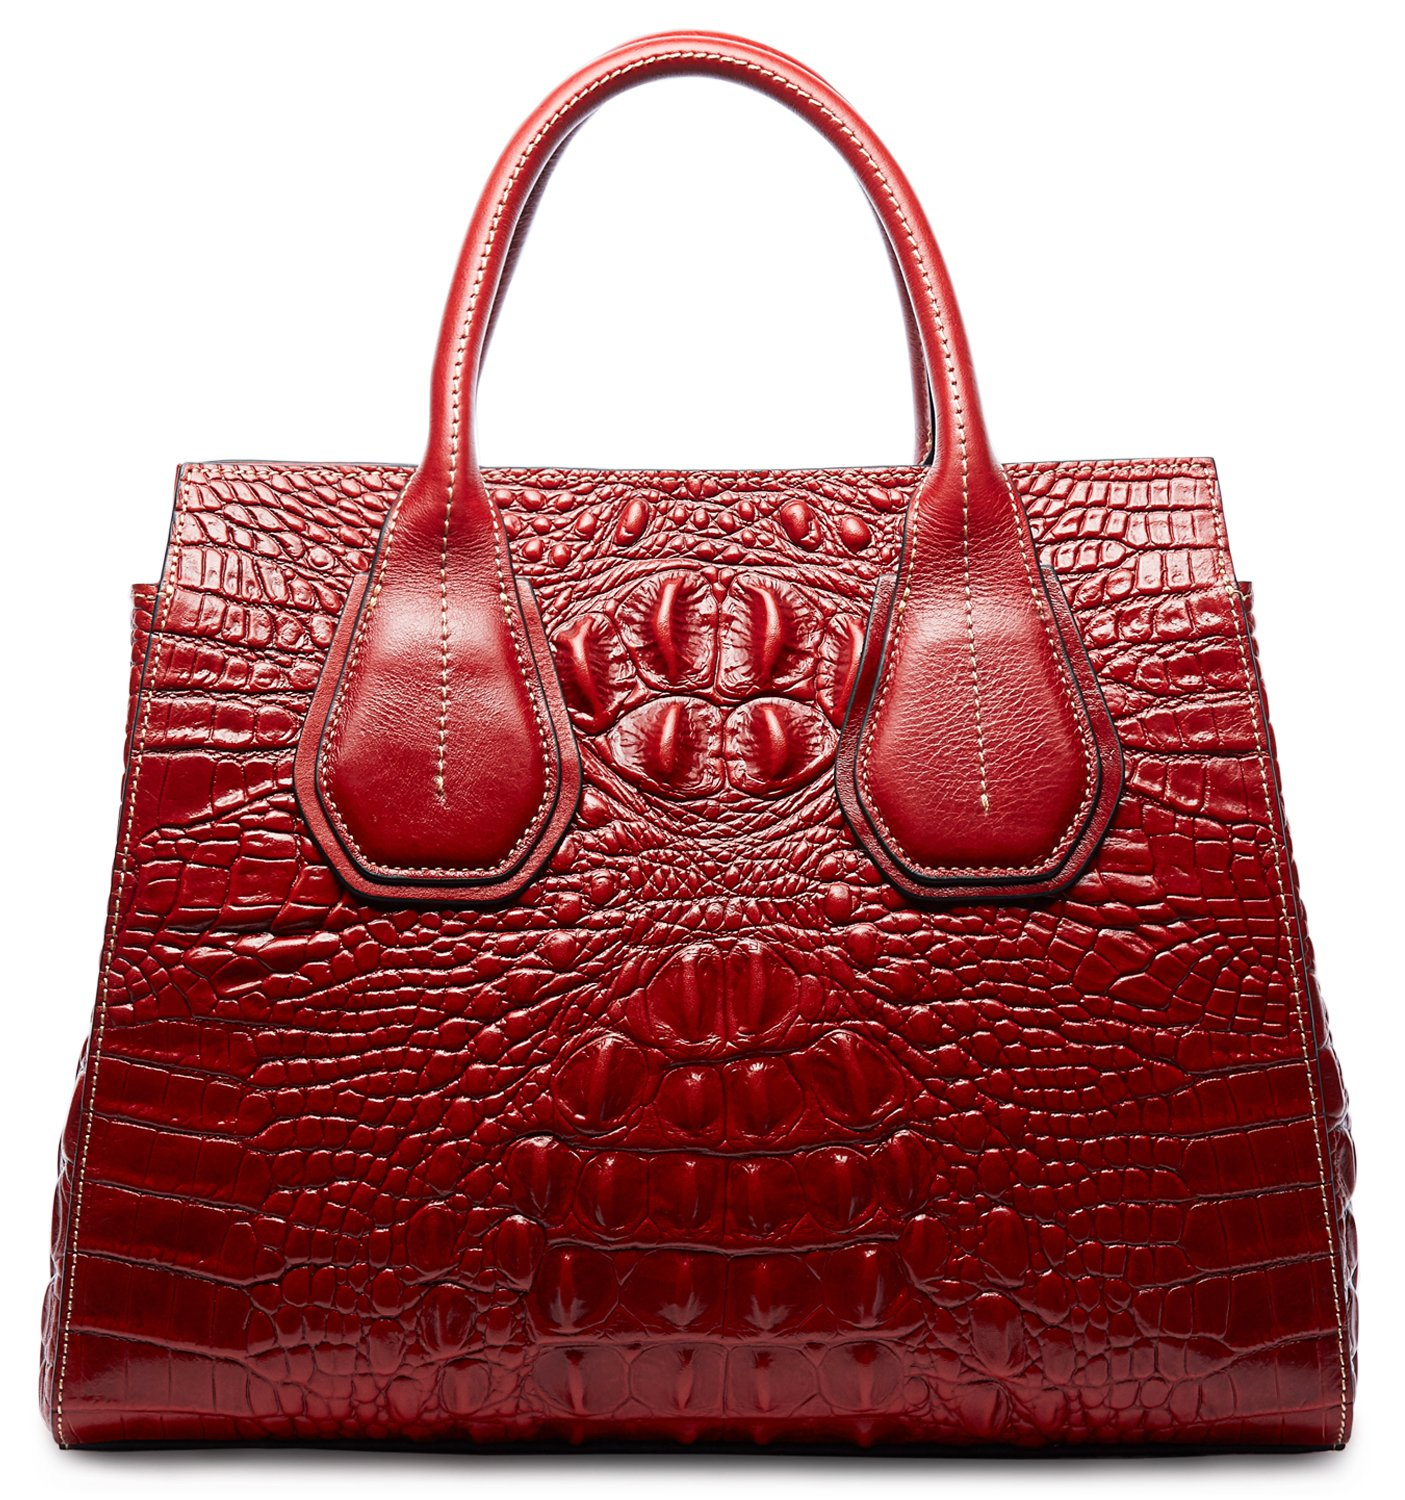 PIFUREN Classic Embossed Crocodile Genuine Leather Top Handle Satchel Handbags M1103(One Size, Red)